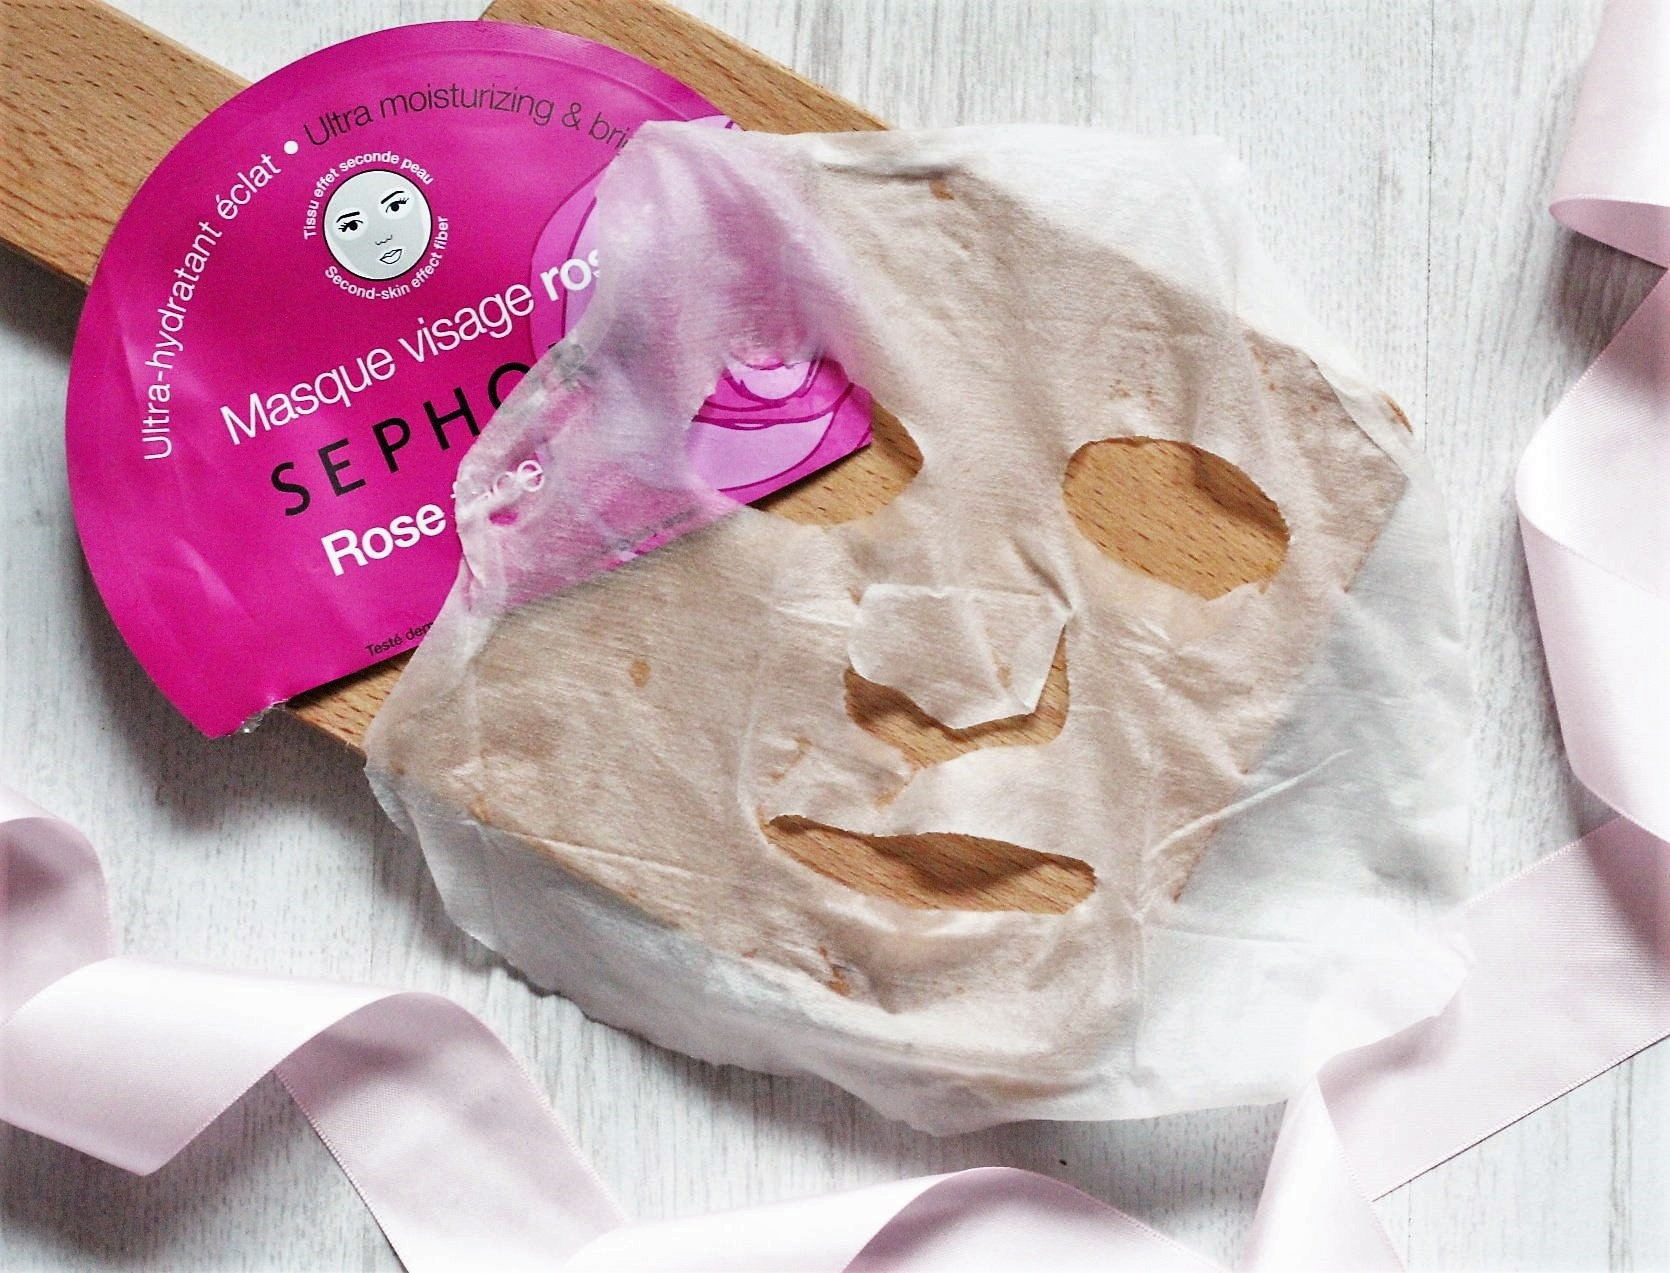 Four Sephora Face Masks Tried and Reviewed - Sephora Rose Sheet Face Mask Sheet (2).jpeg